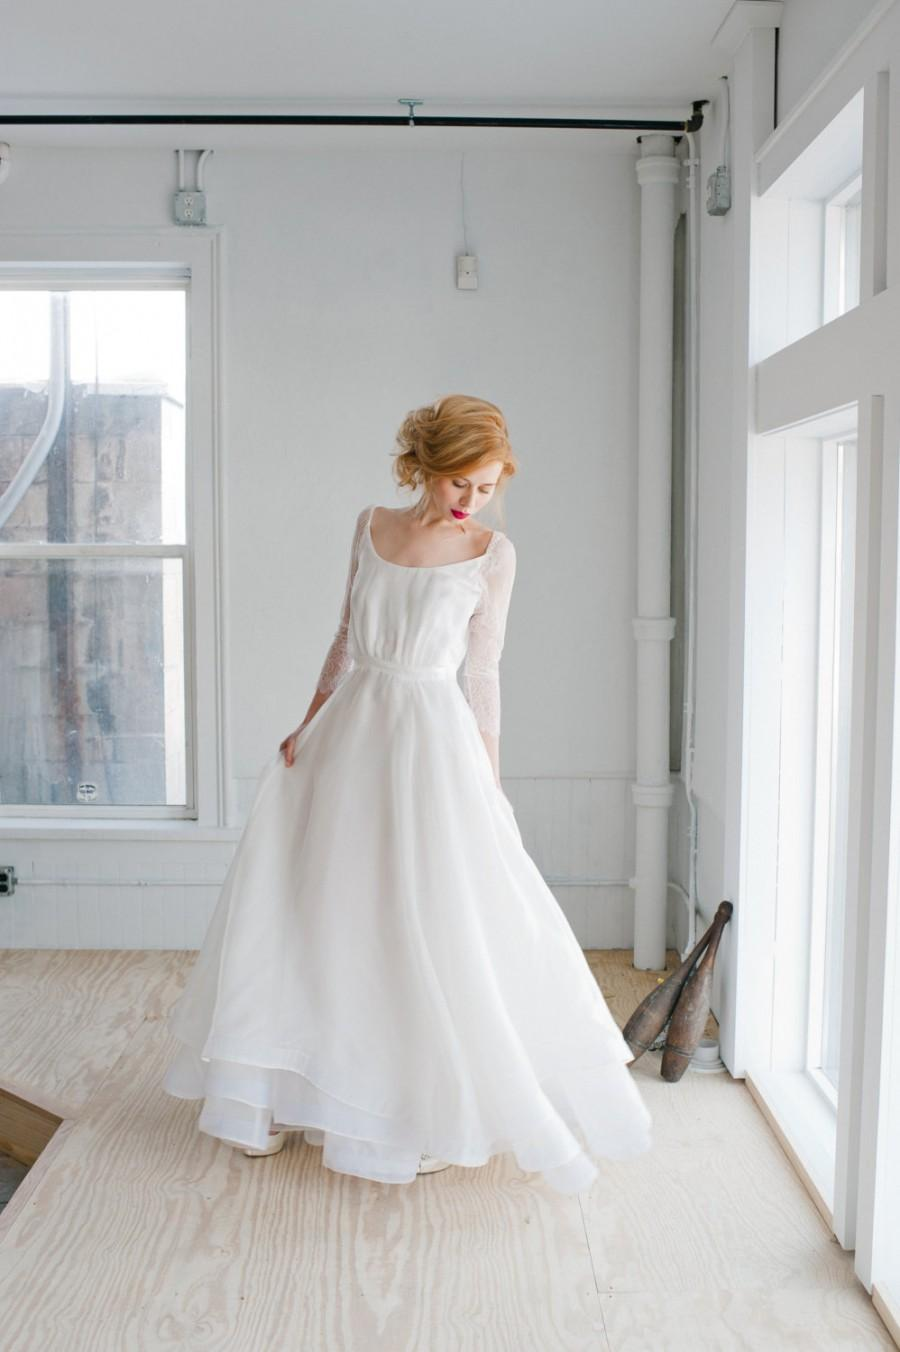 Rowan wedding dress handmade bridal dress gorgeous gown for Tiered wedding dress with sleeves